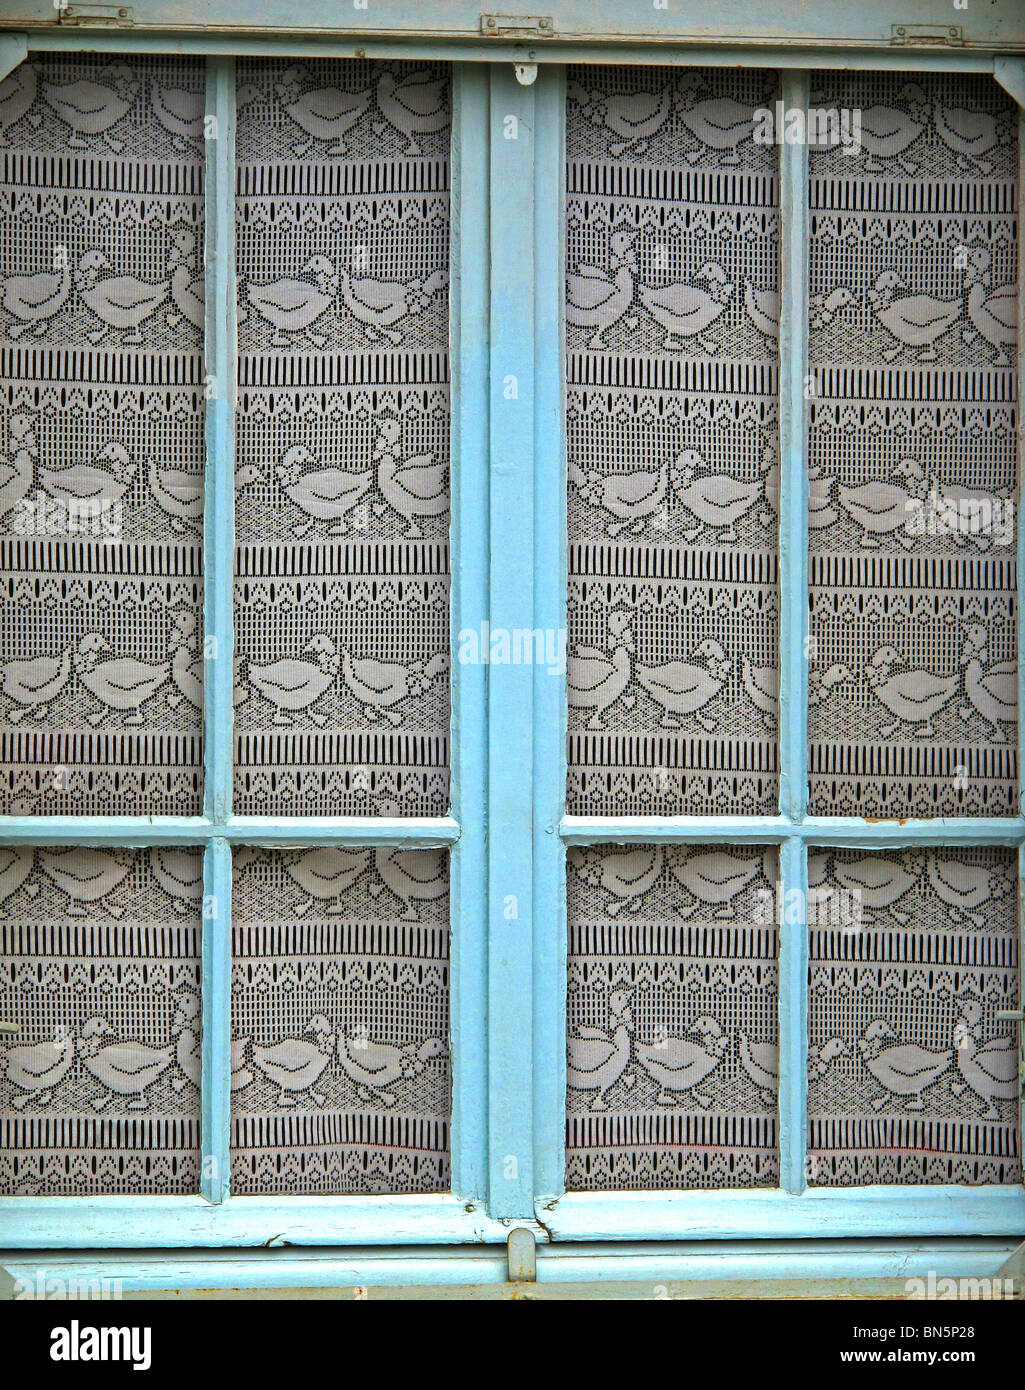 Geese net curtains-found in the Foie gras area of France. - Stock Image